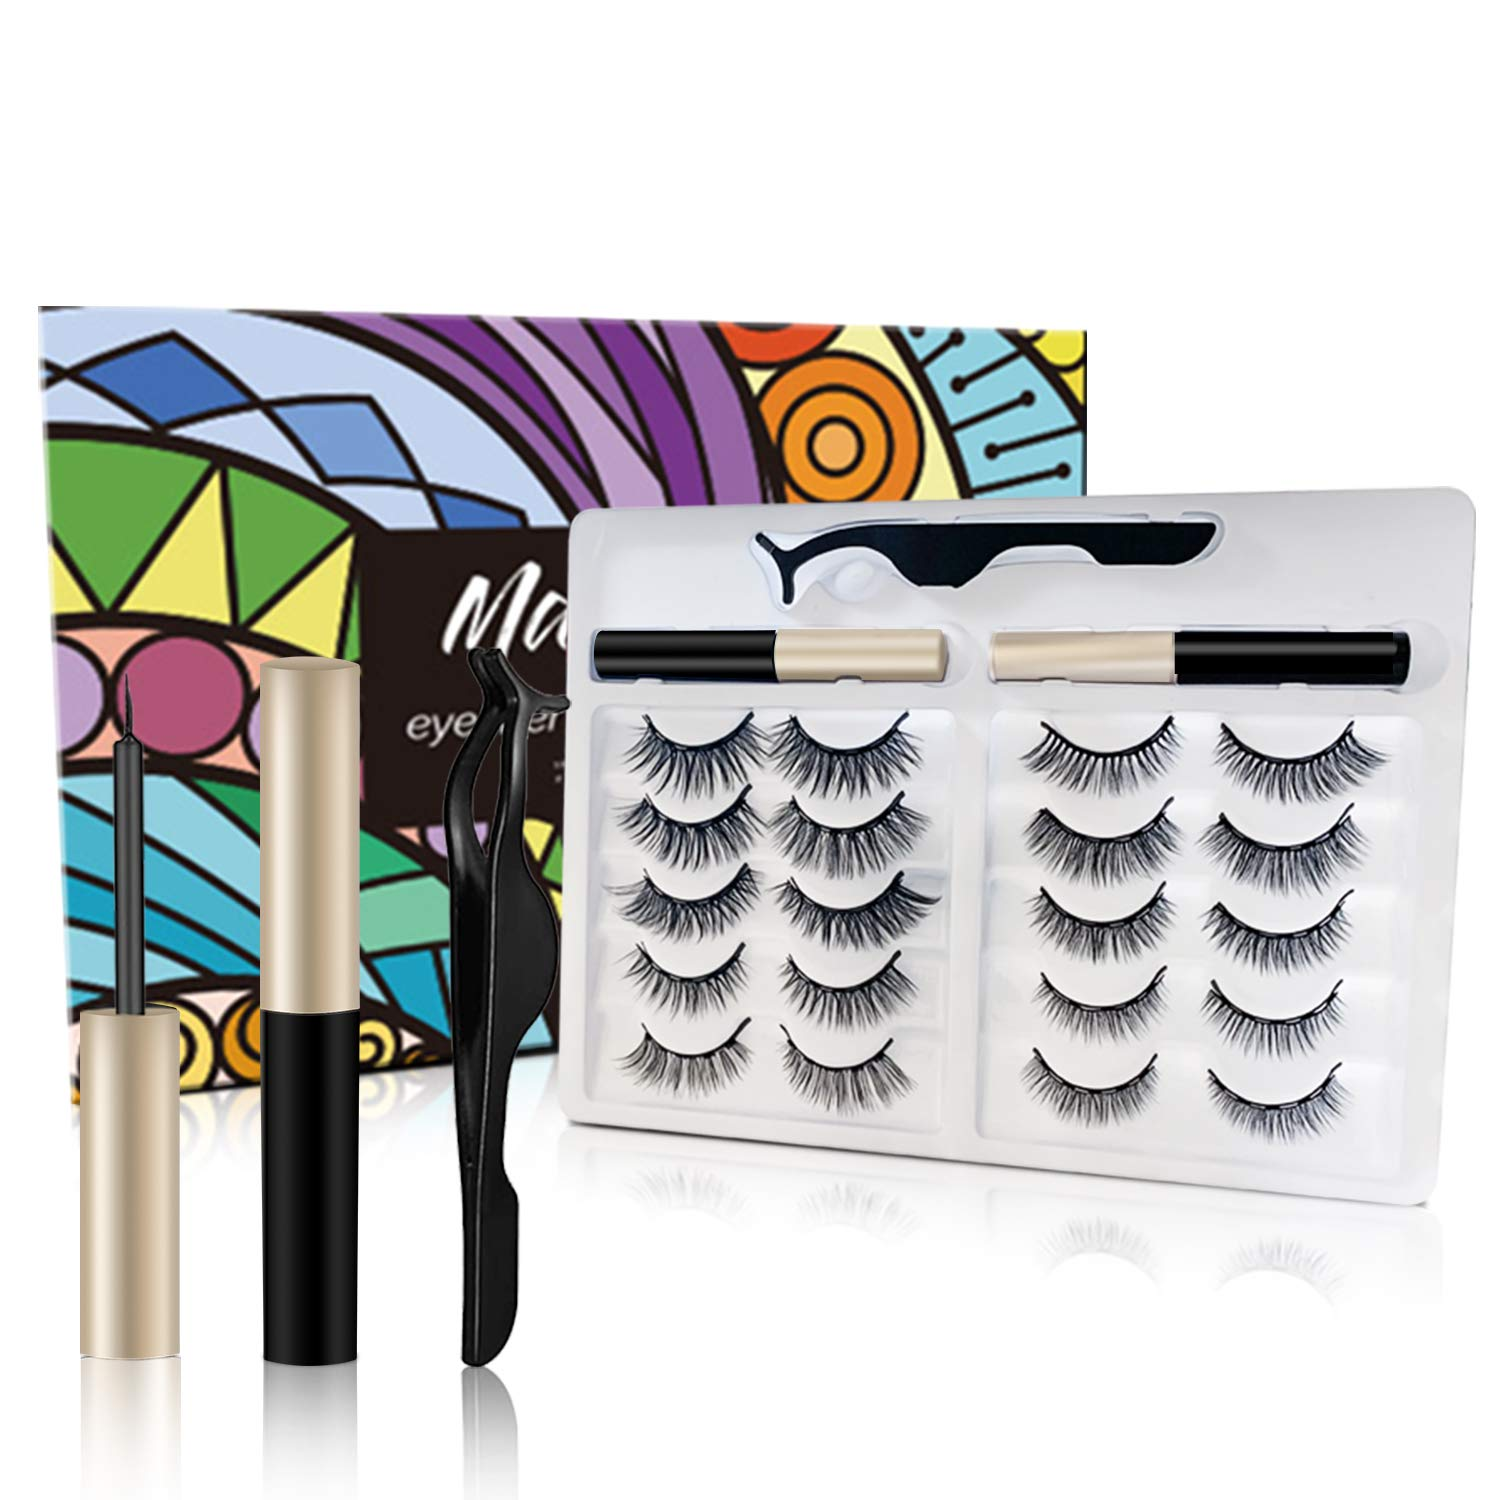 Upgraded 10 Pairs Magnetic Eyelashes Kit with Double Eyeliners, Reusable 3D Magnetic Faux Mink Eye Lashes set with Tweezers Two Long Lasting Waterproof Eyeliners For Women